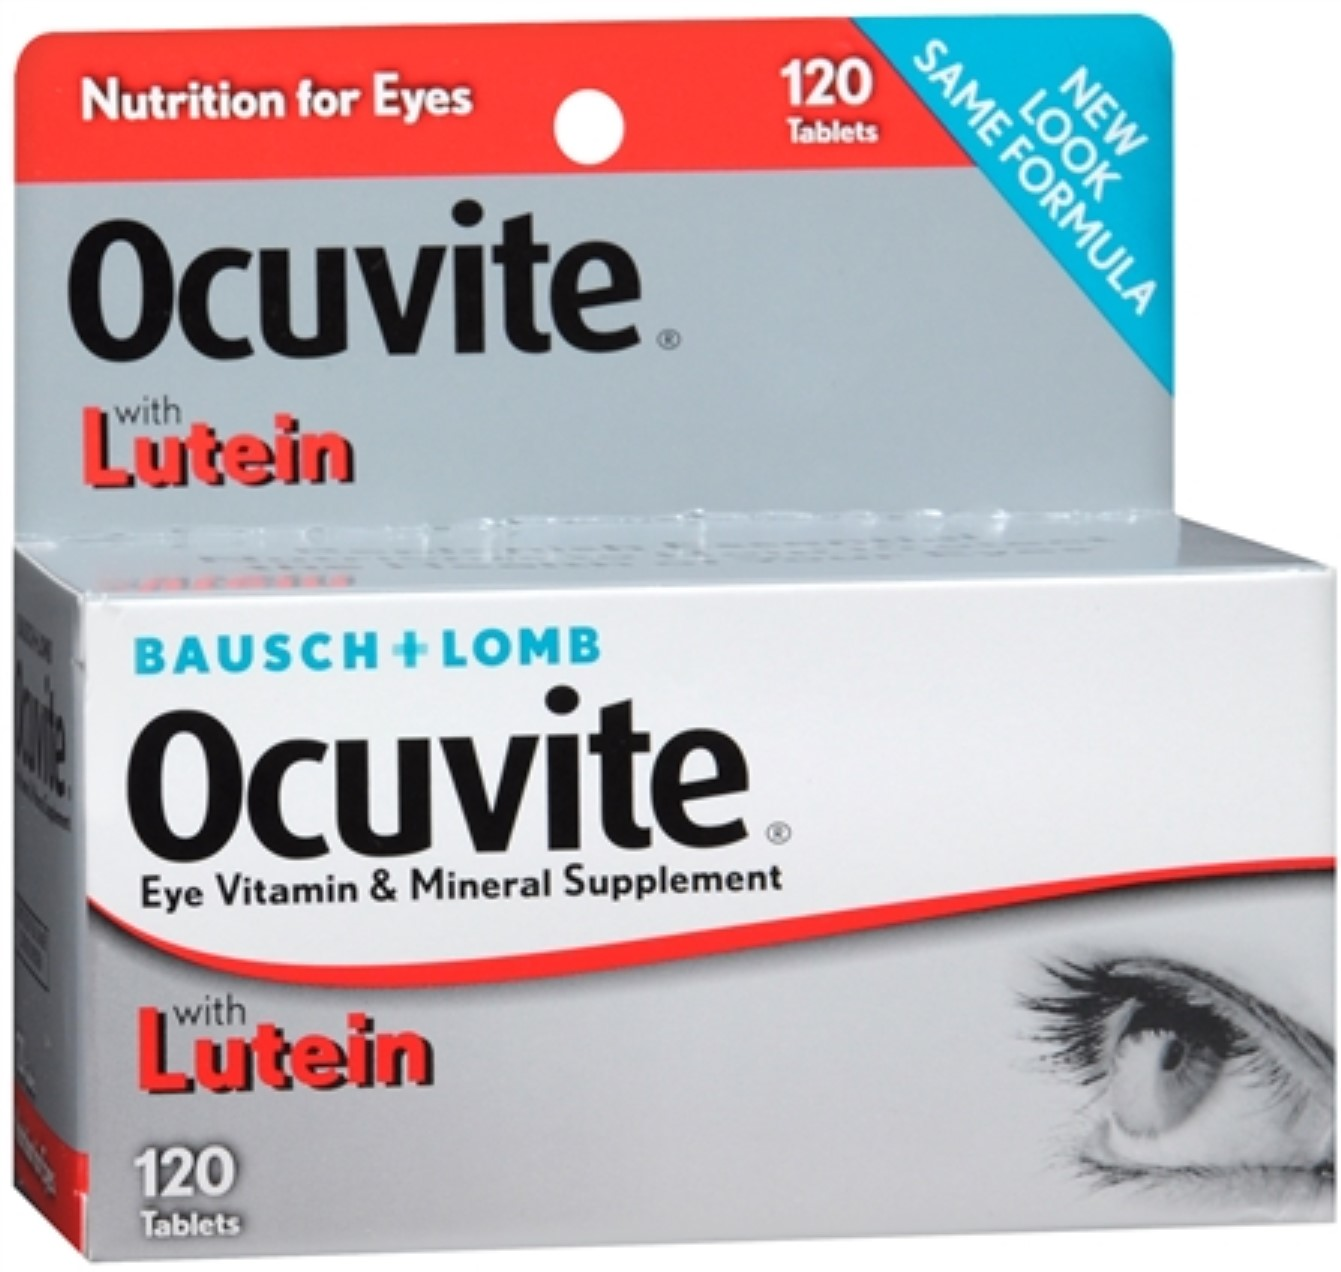 Bausch & Lomb Ocuvite Tablets 120 Tablets (Pack of 2)